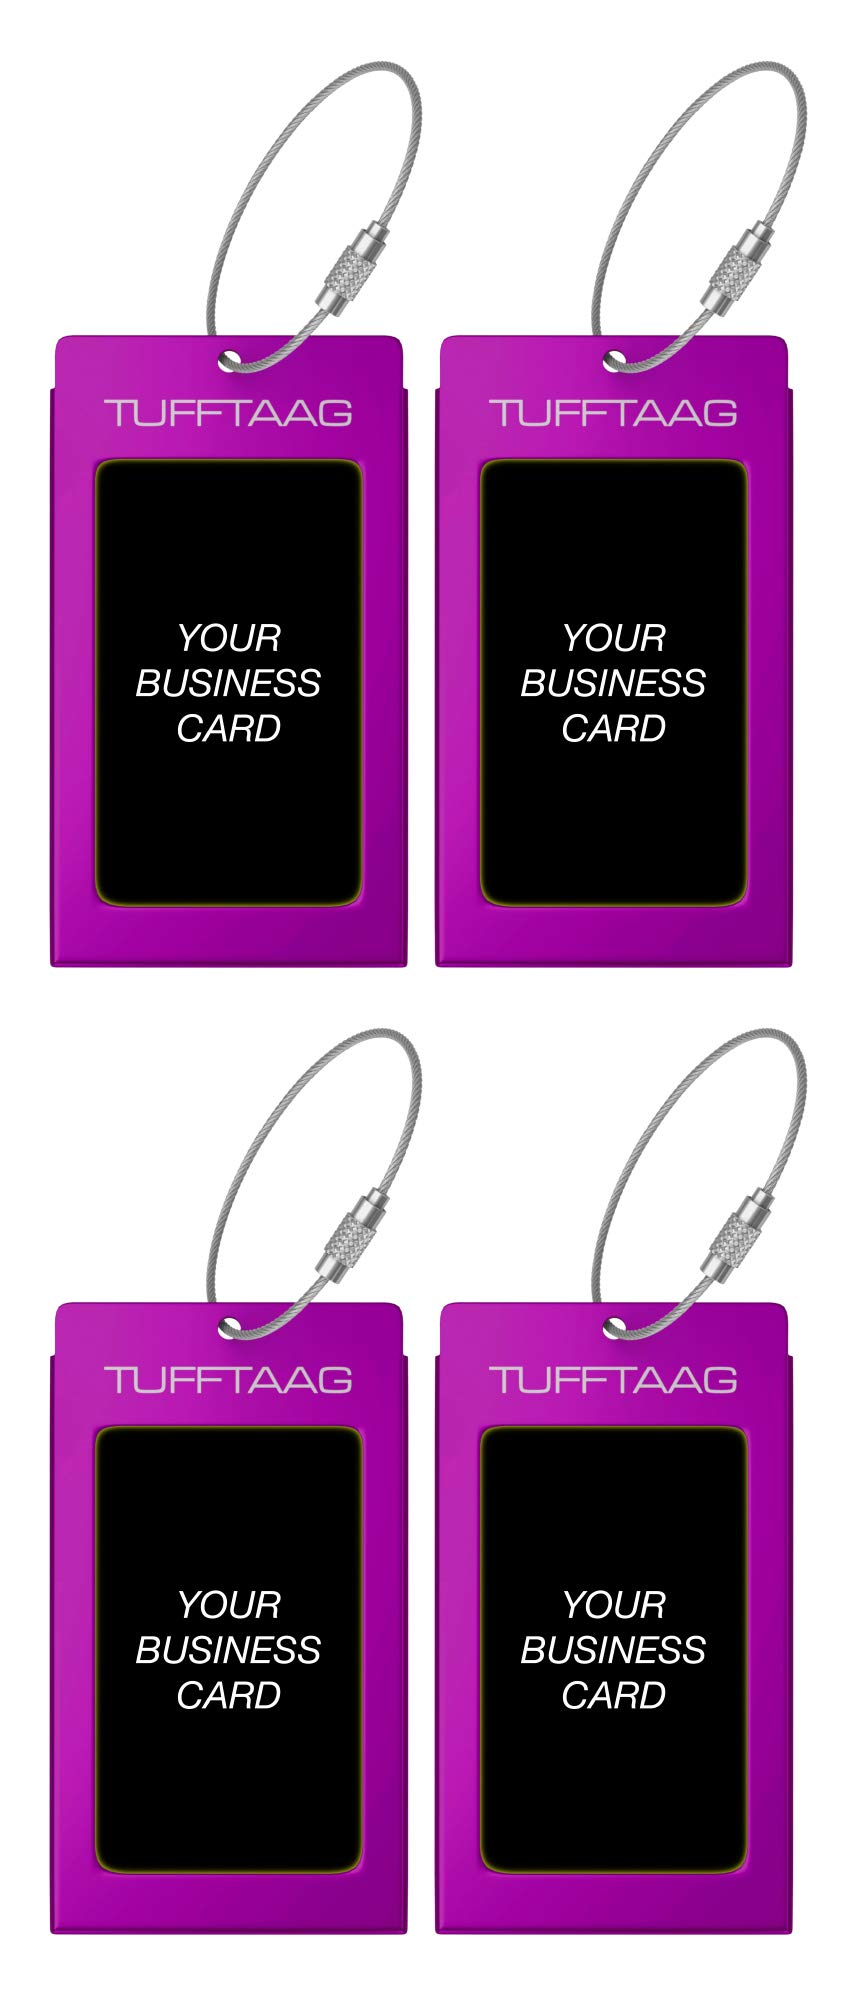 Luggage Tags TUFFTAAG for Business Cards, Metal Suitcase Labels, 4 Pack Bundle (4 Purple) by ProudGuy